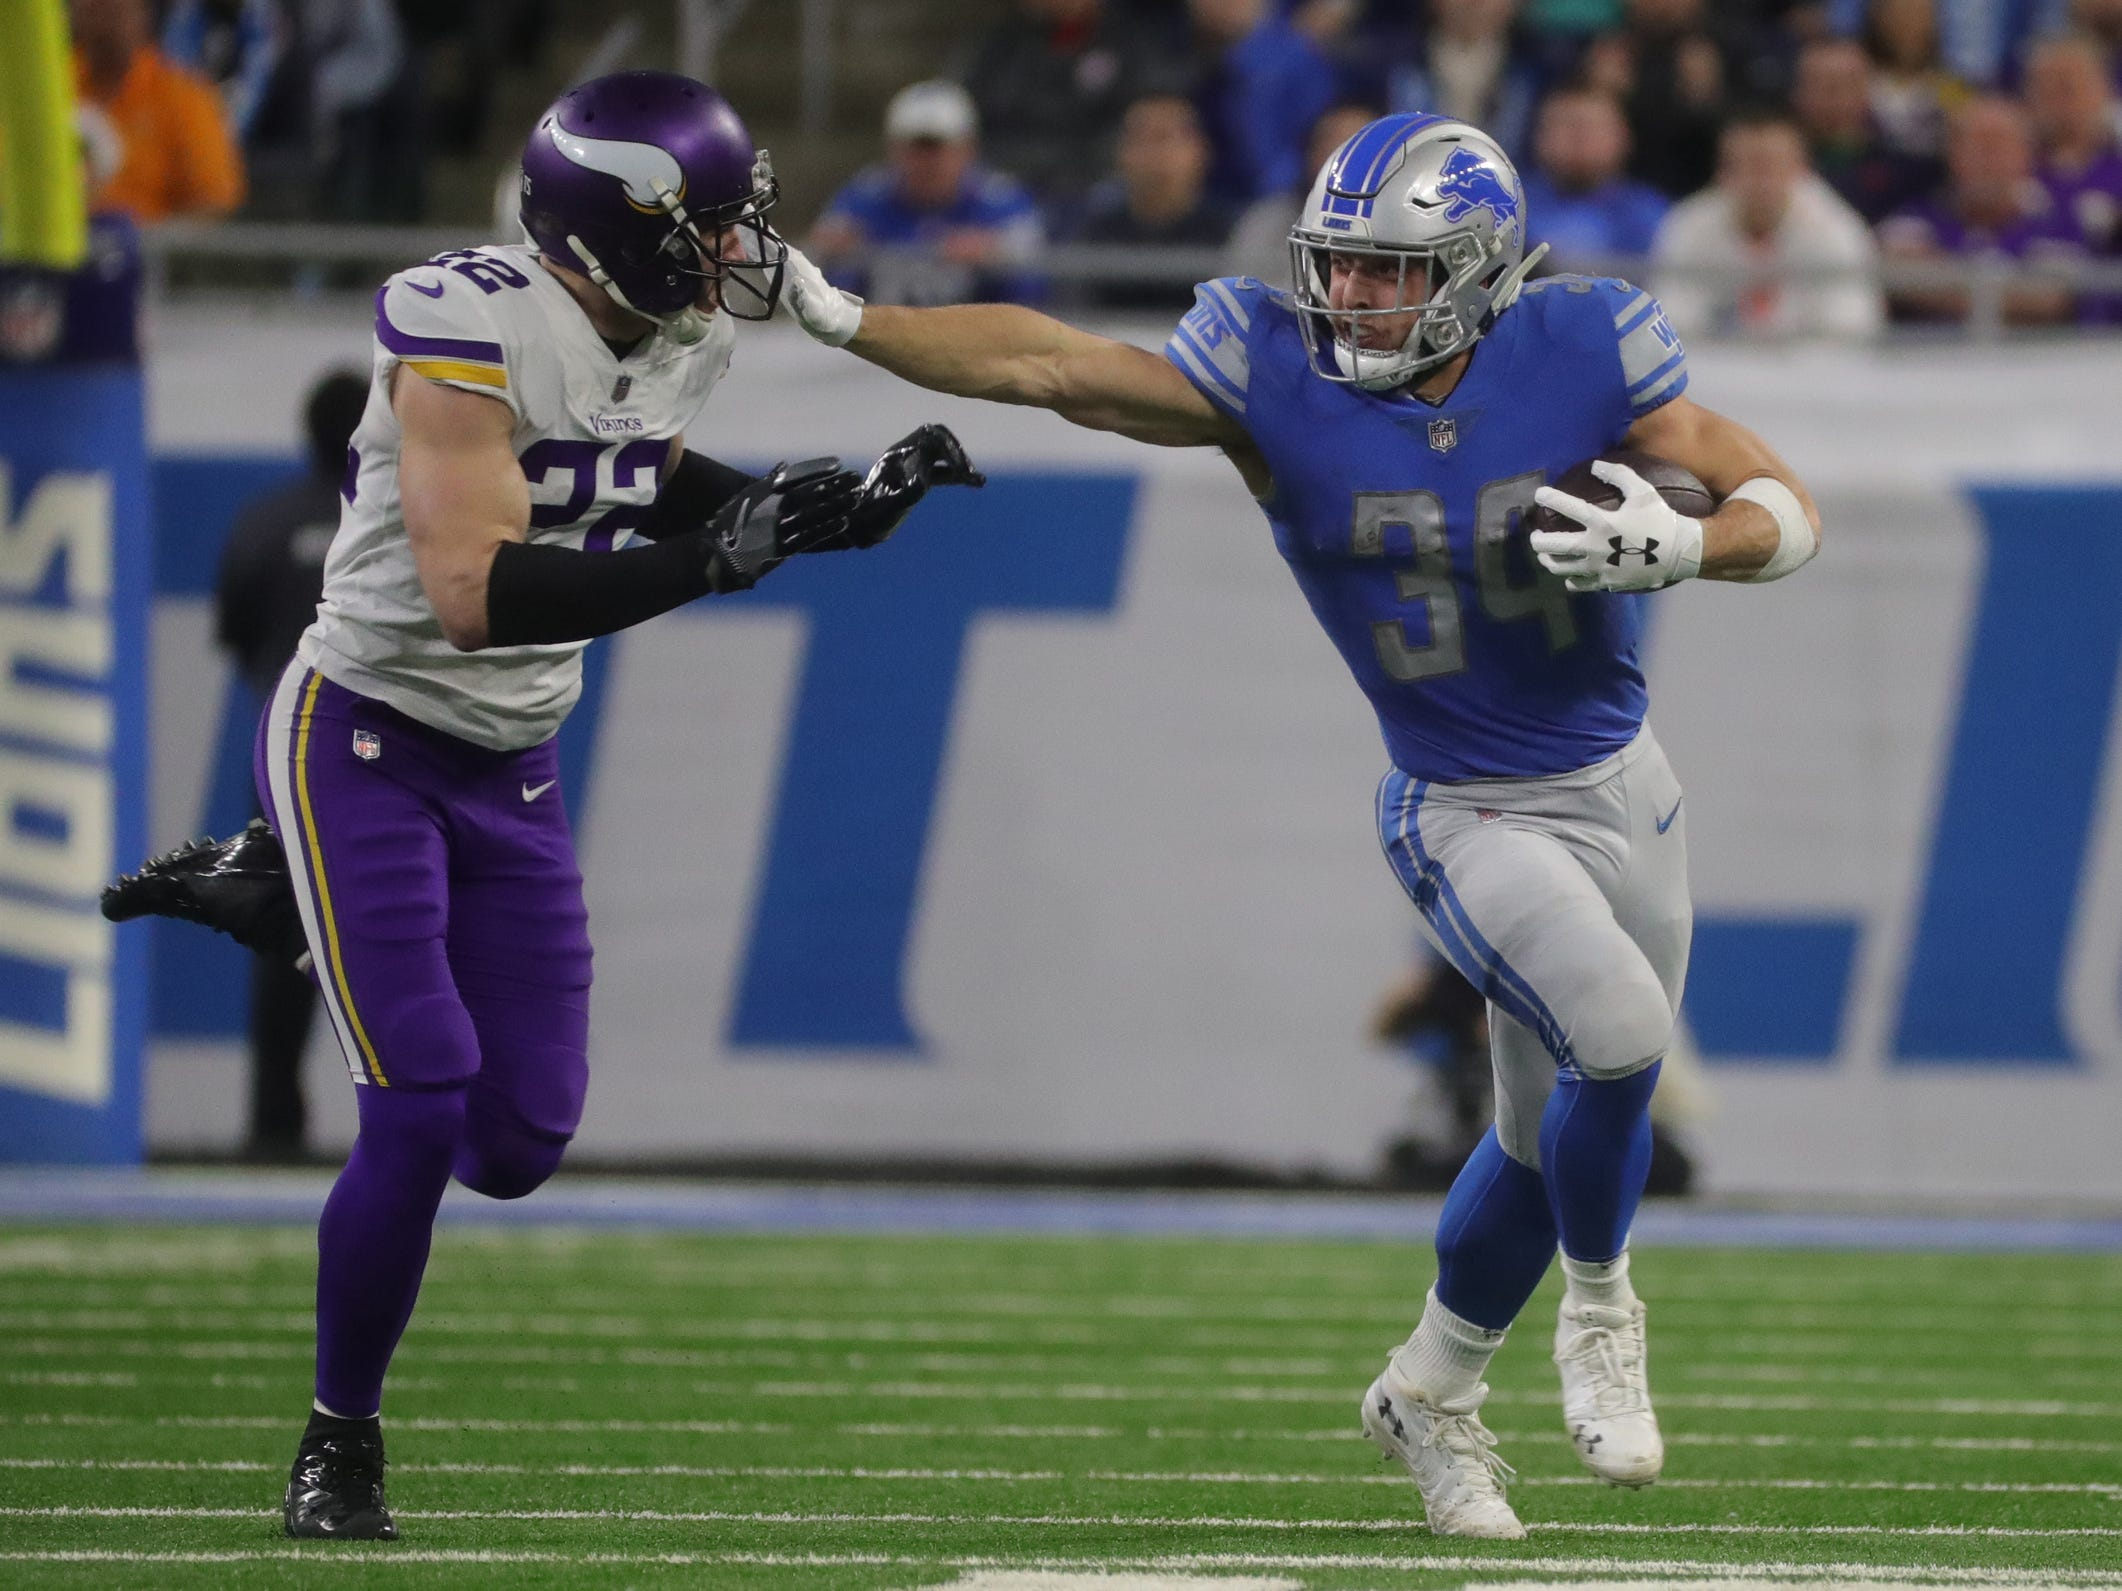 Lions running back Zach Zenner runs by Vikings safety Harrison Smith during the first half of the Lions' 27-9 loss on Sunday, Dec. 23, 2018, at Ford Field.